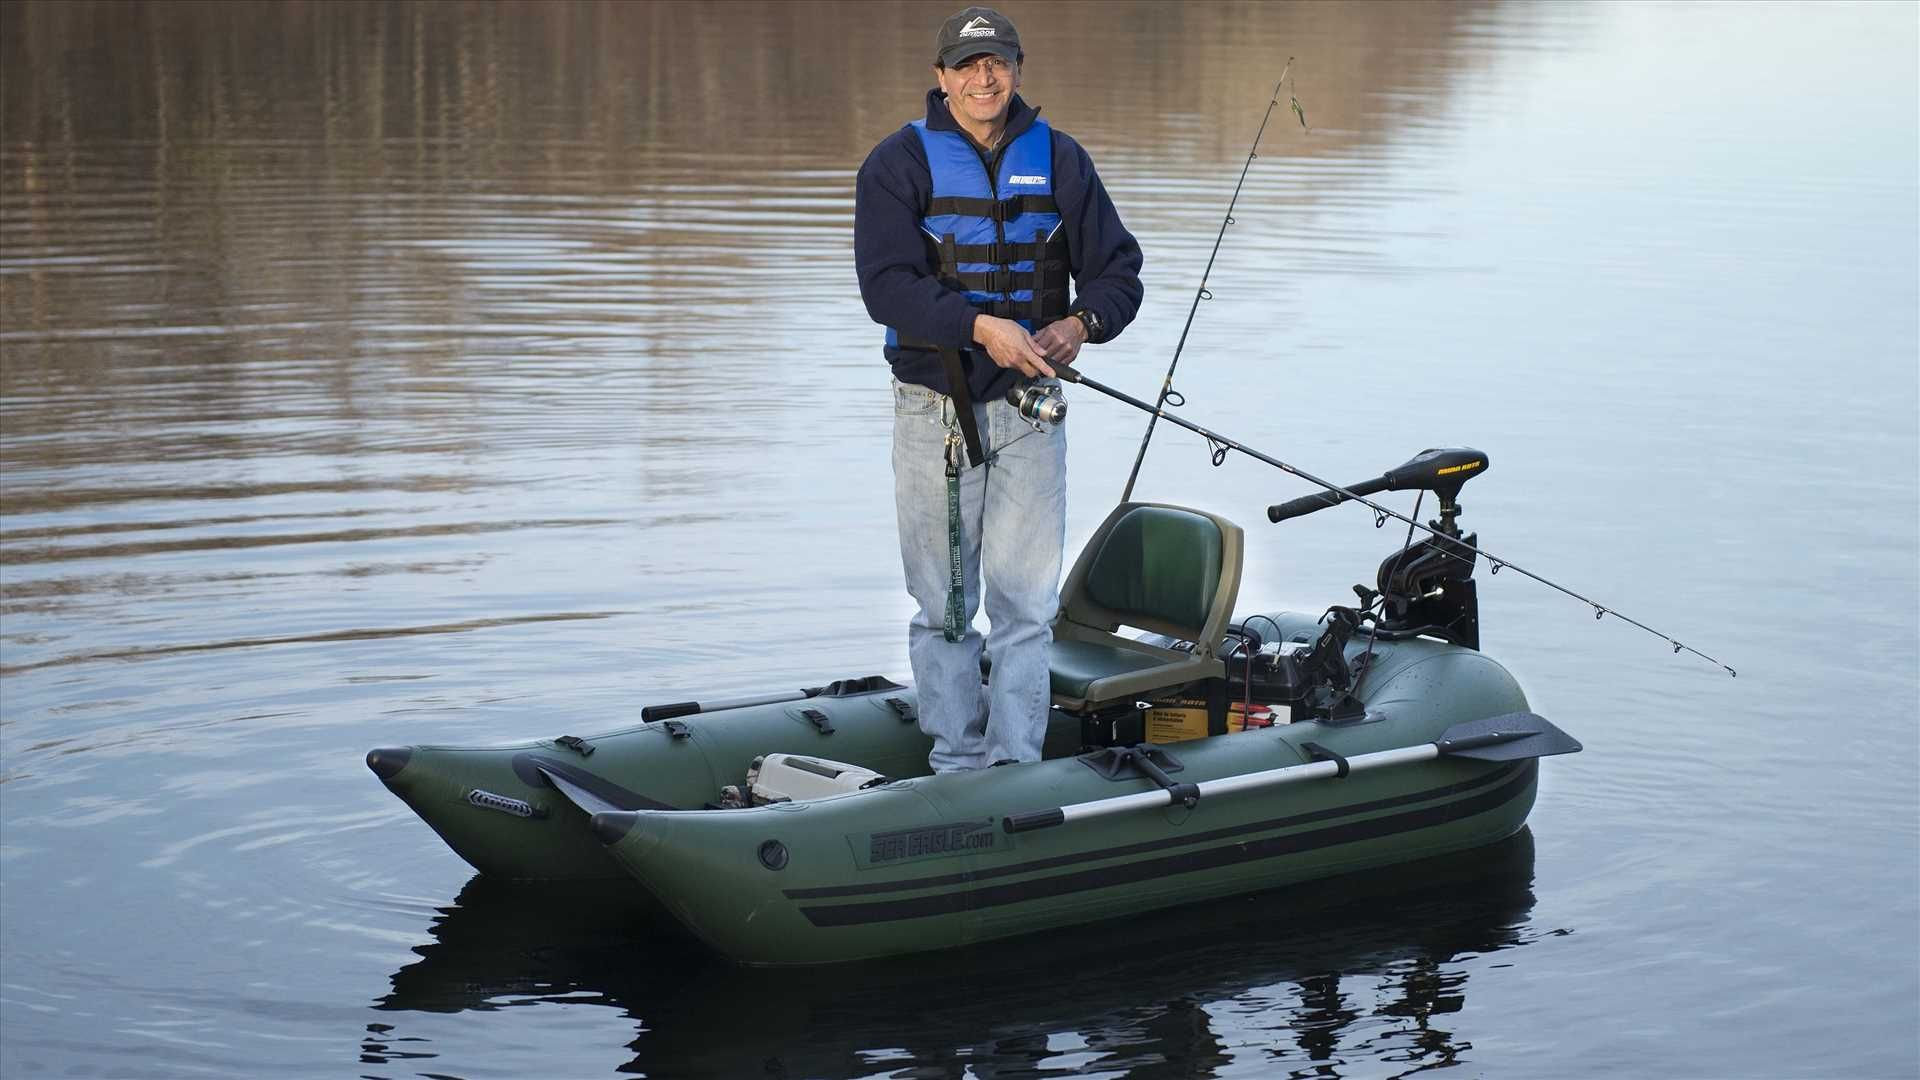 Sea Eagle 285fpb 1 Person Inflatable Fishing Boat Package Prices Starting At 799 Plus Free Shipping Fishing Boats Inflatable Pontoon Boats Pontoon Boat